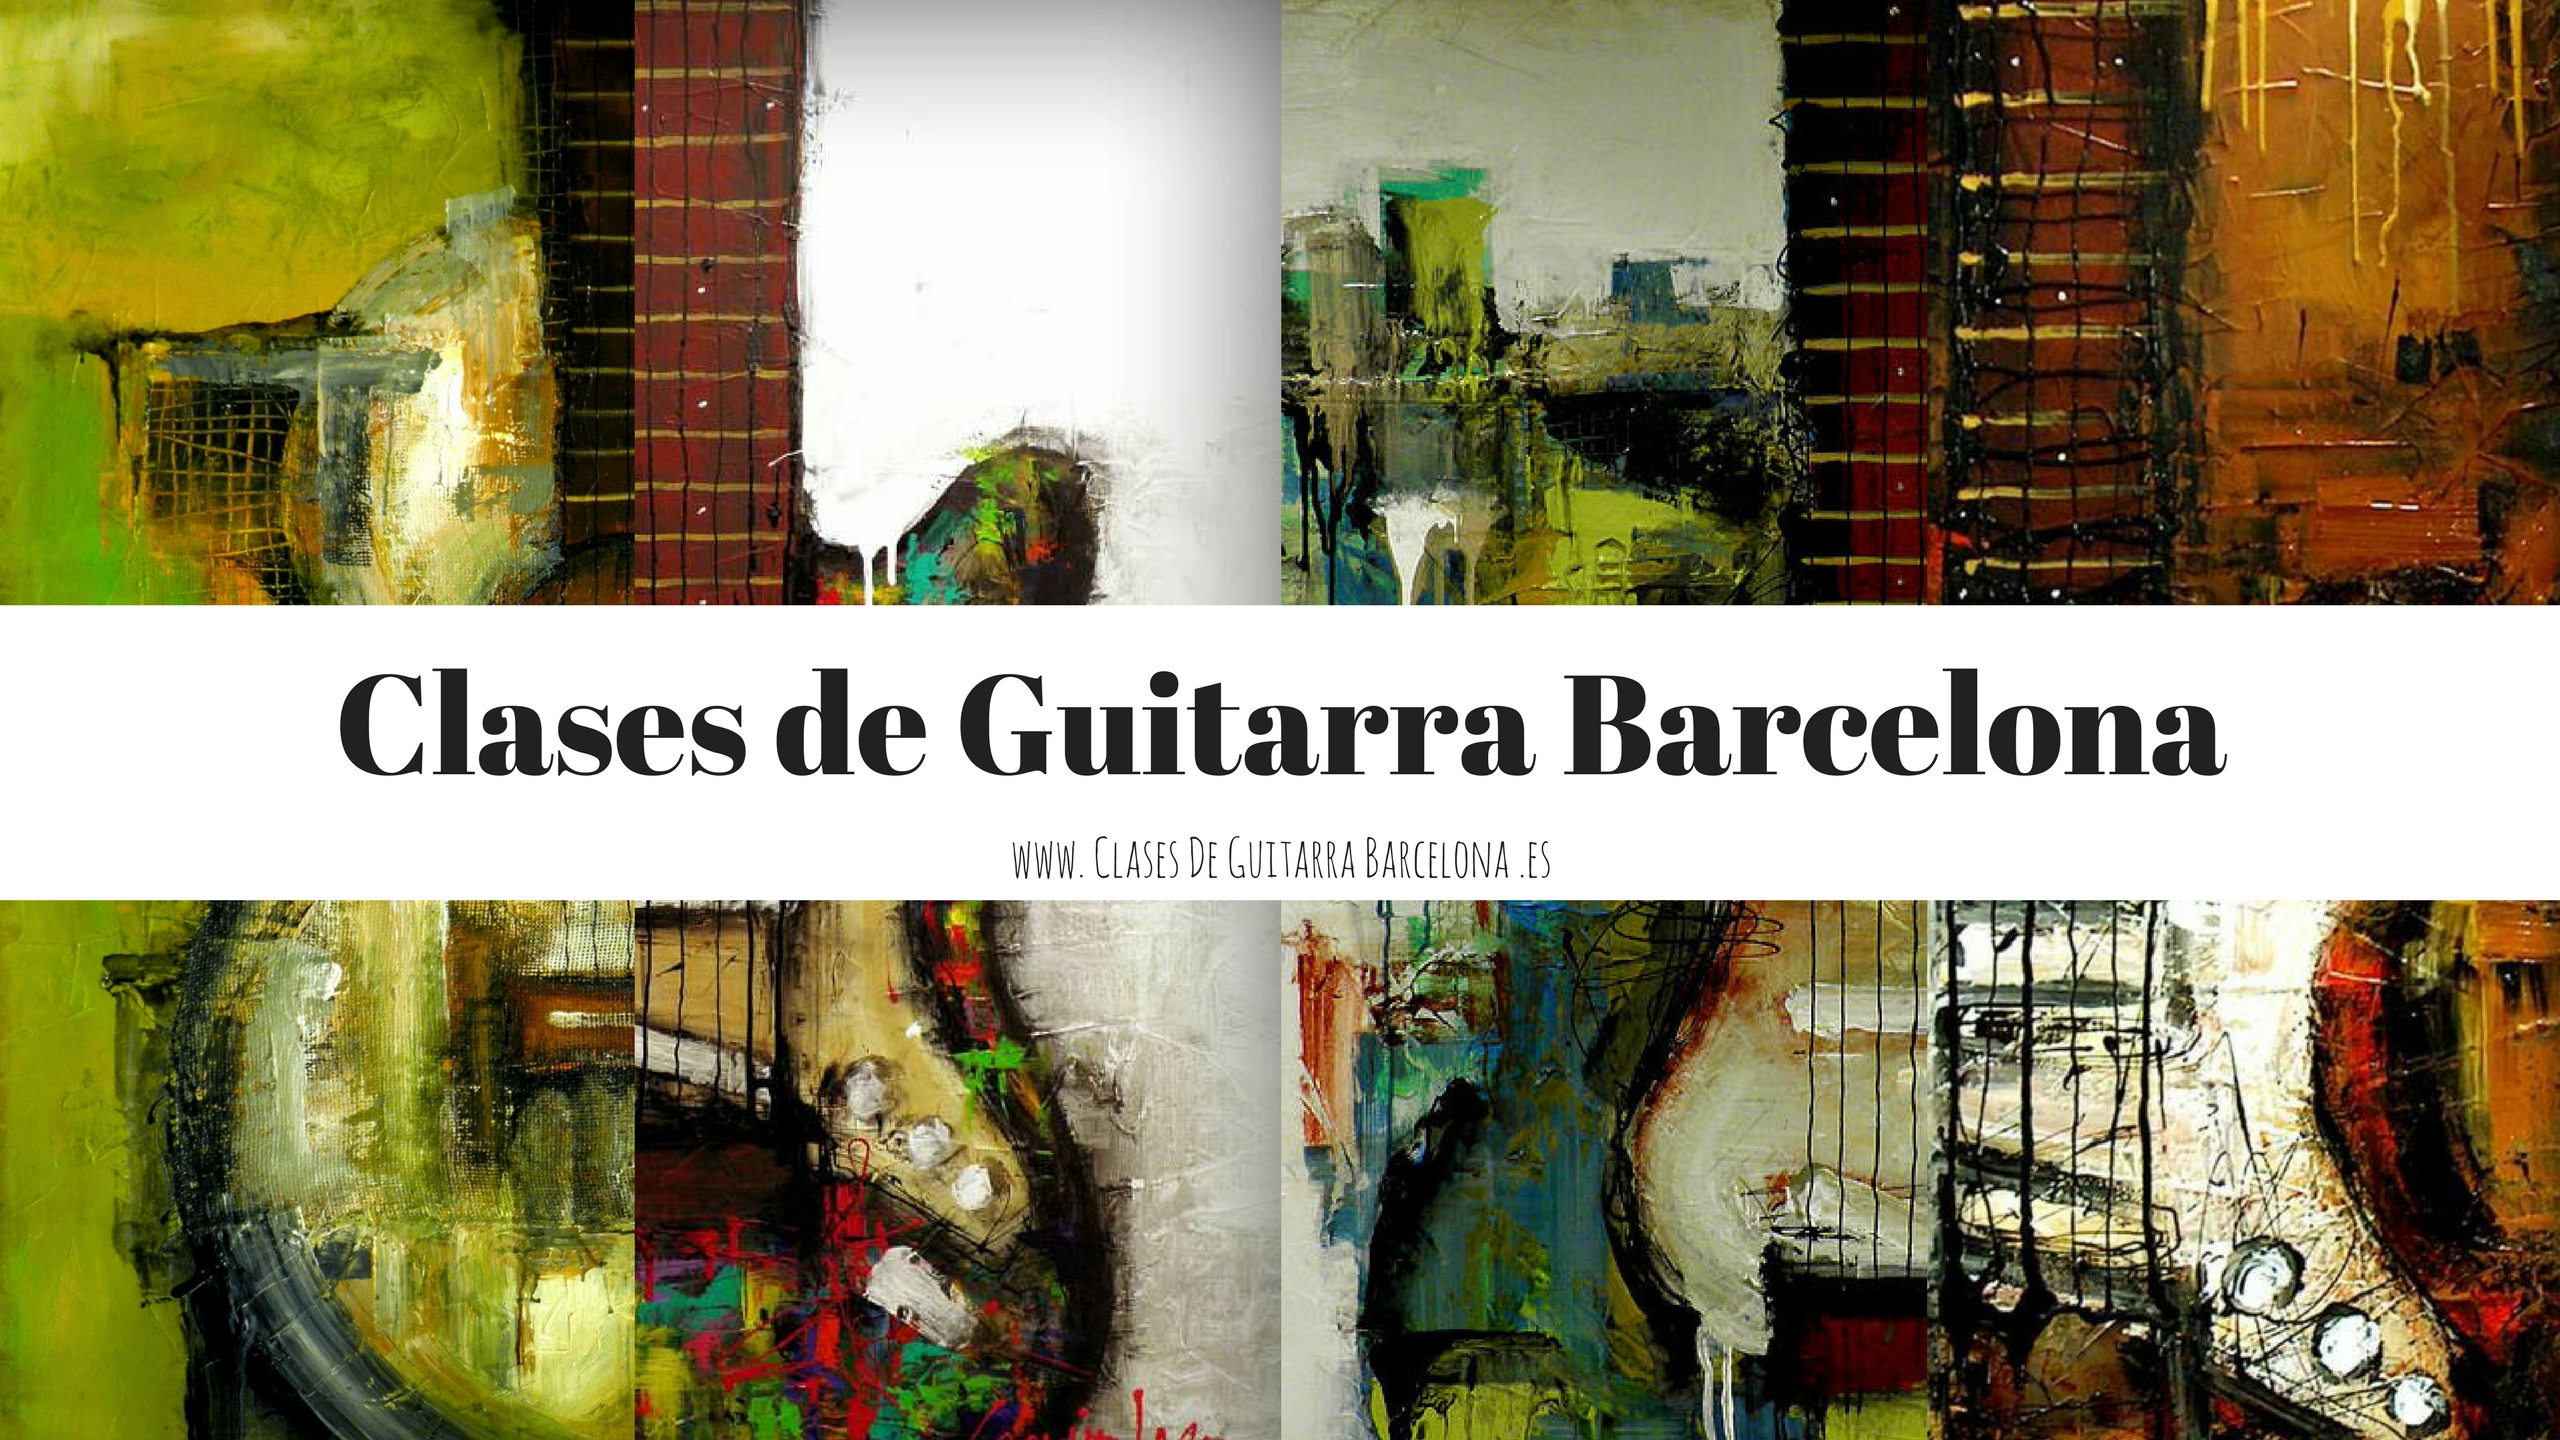 """Waiting So Long"" – Copyright 2003–2012, www.sergiolazo.com, All Rights Reserved - Clases de Guitarra Barcelona"